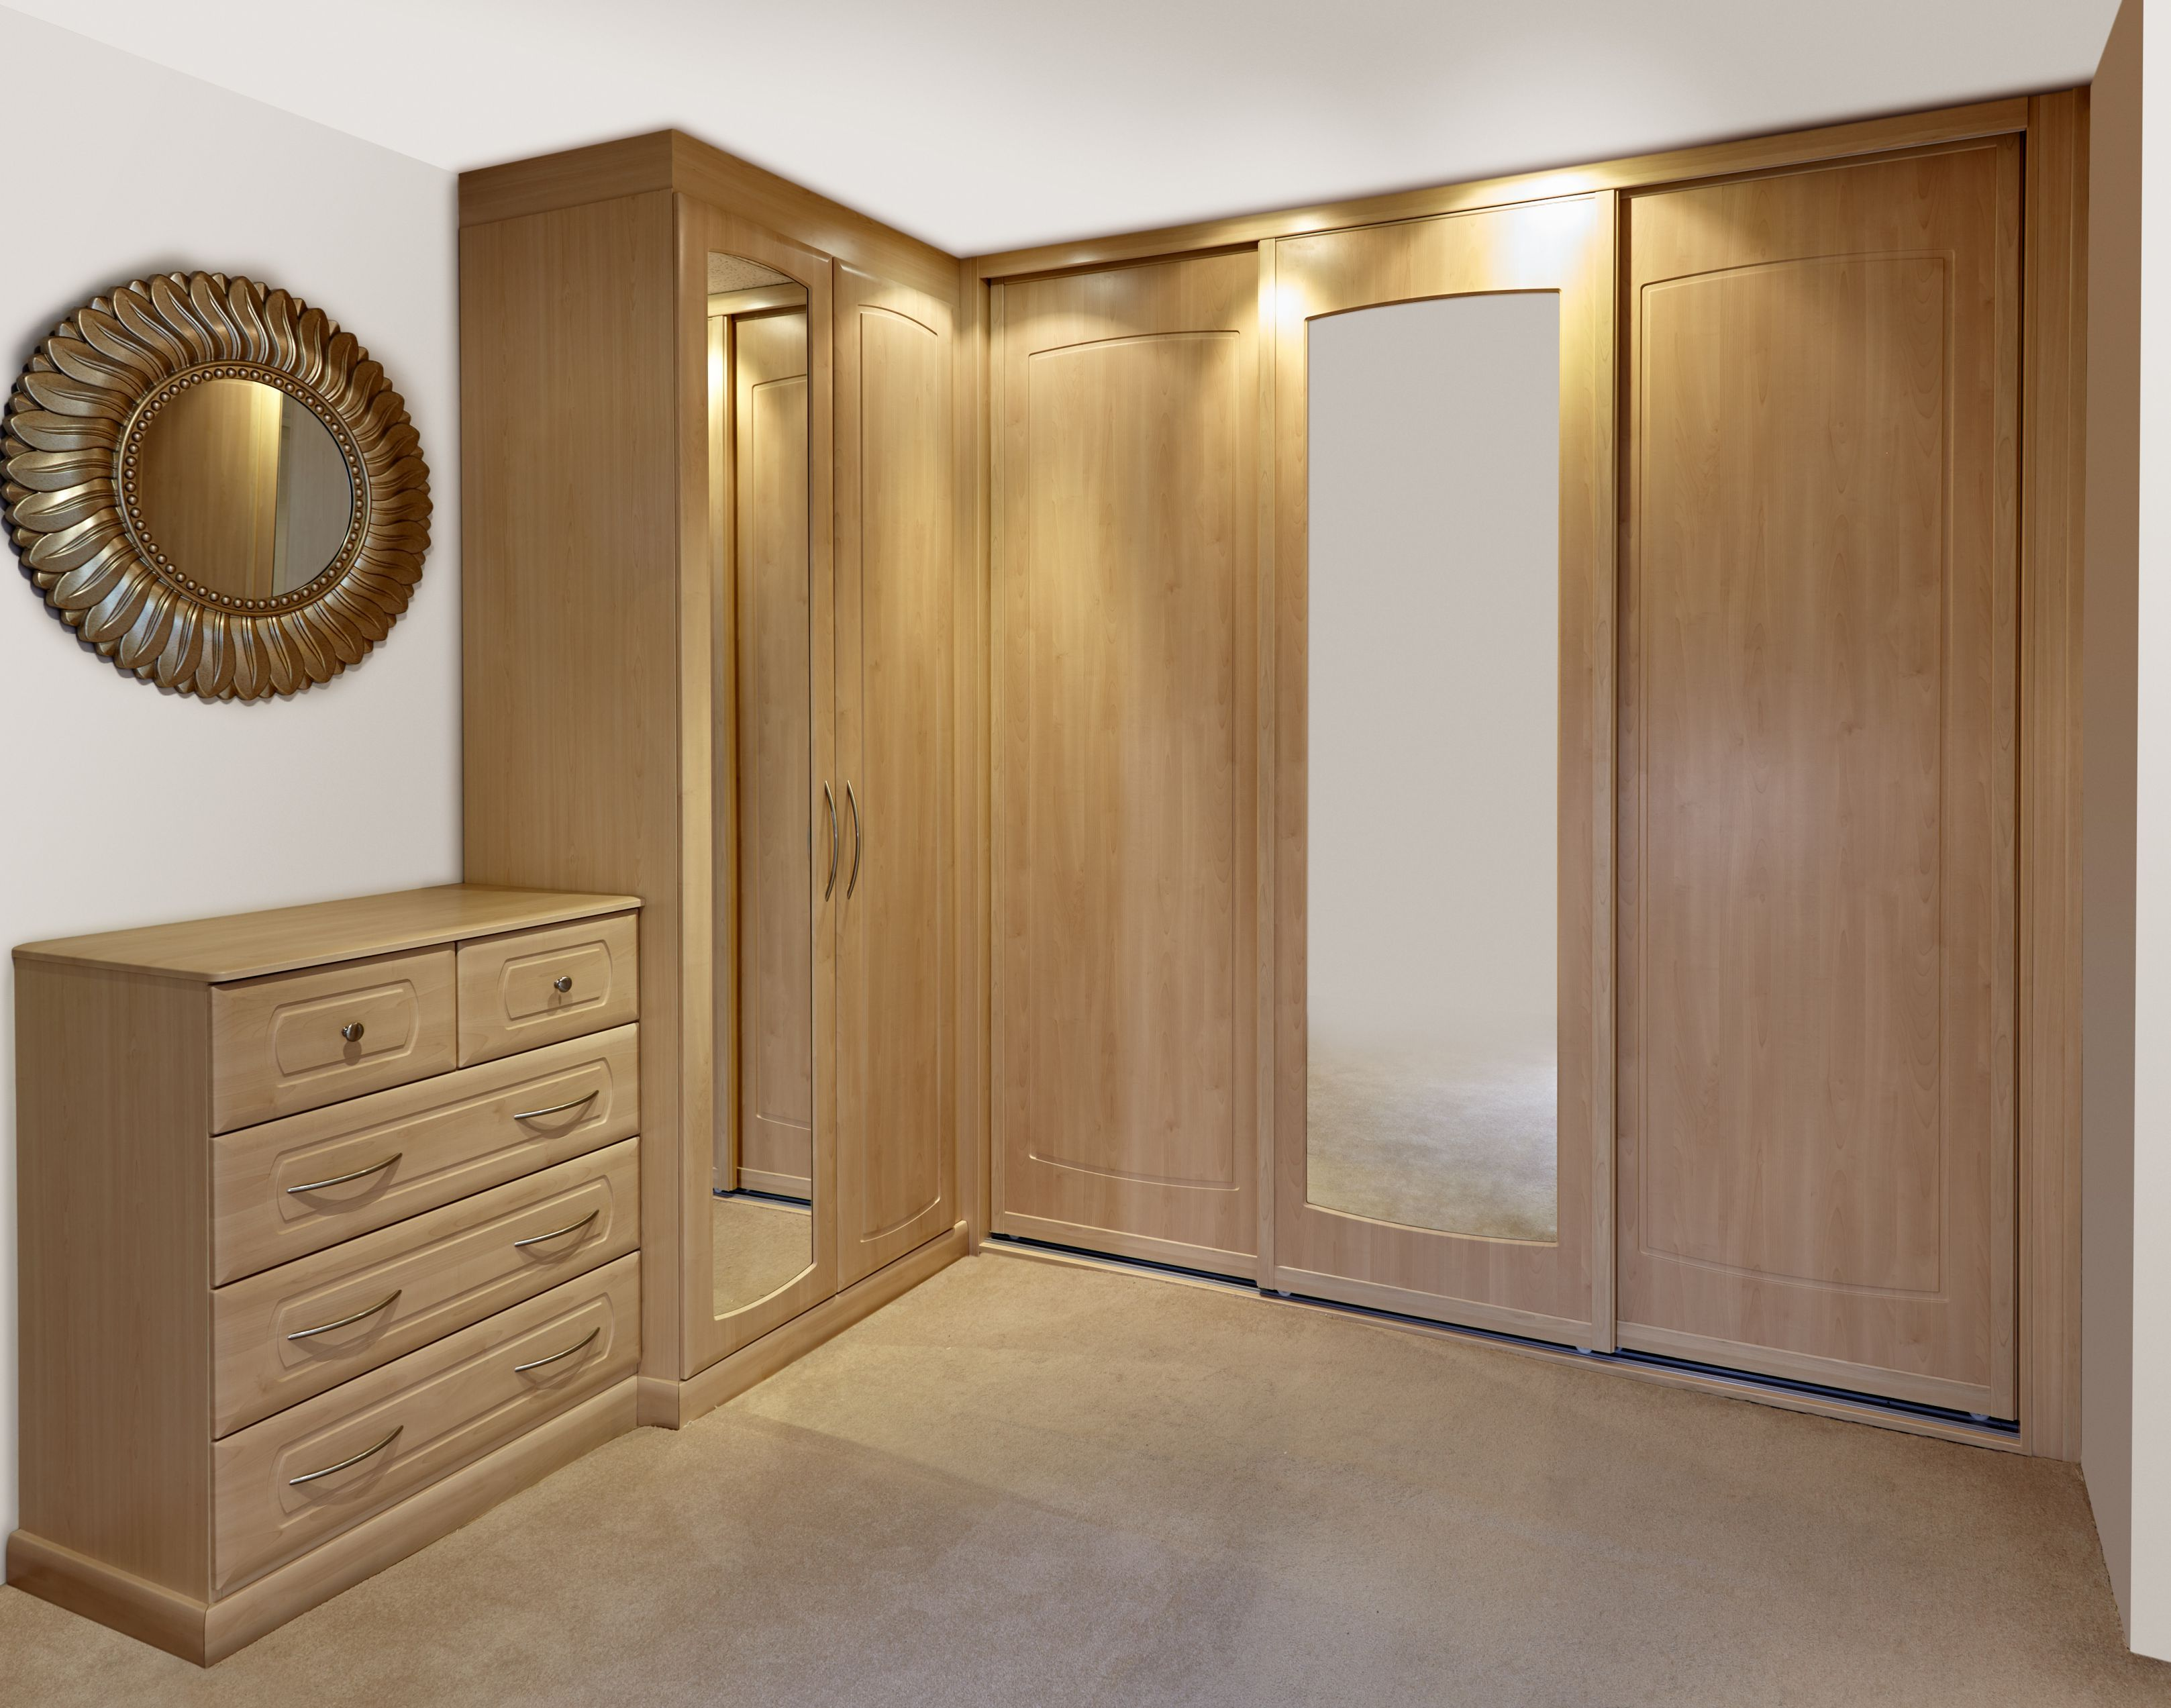 Built In Wardrobe Designs For Bedroom Enchanting Fitted Bedroom Furniture Ltd Built Wardrobe Ideas Small Bespoke Decorating Inspiration